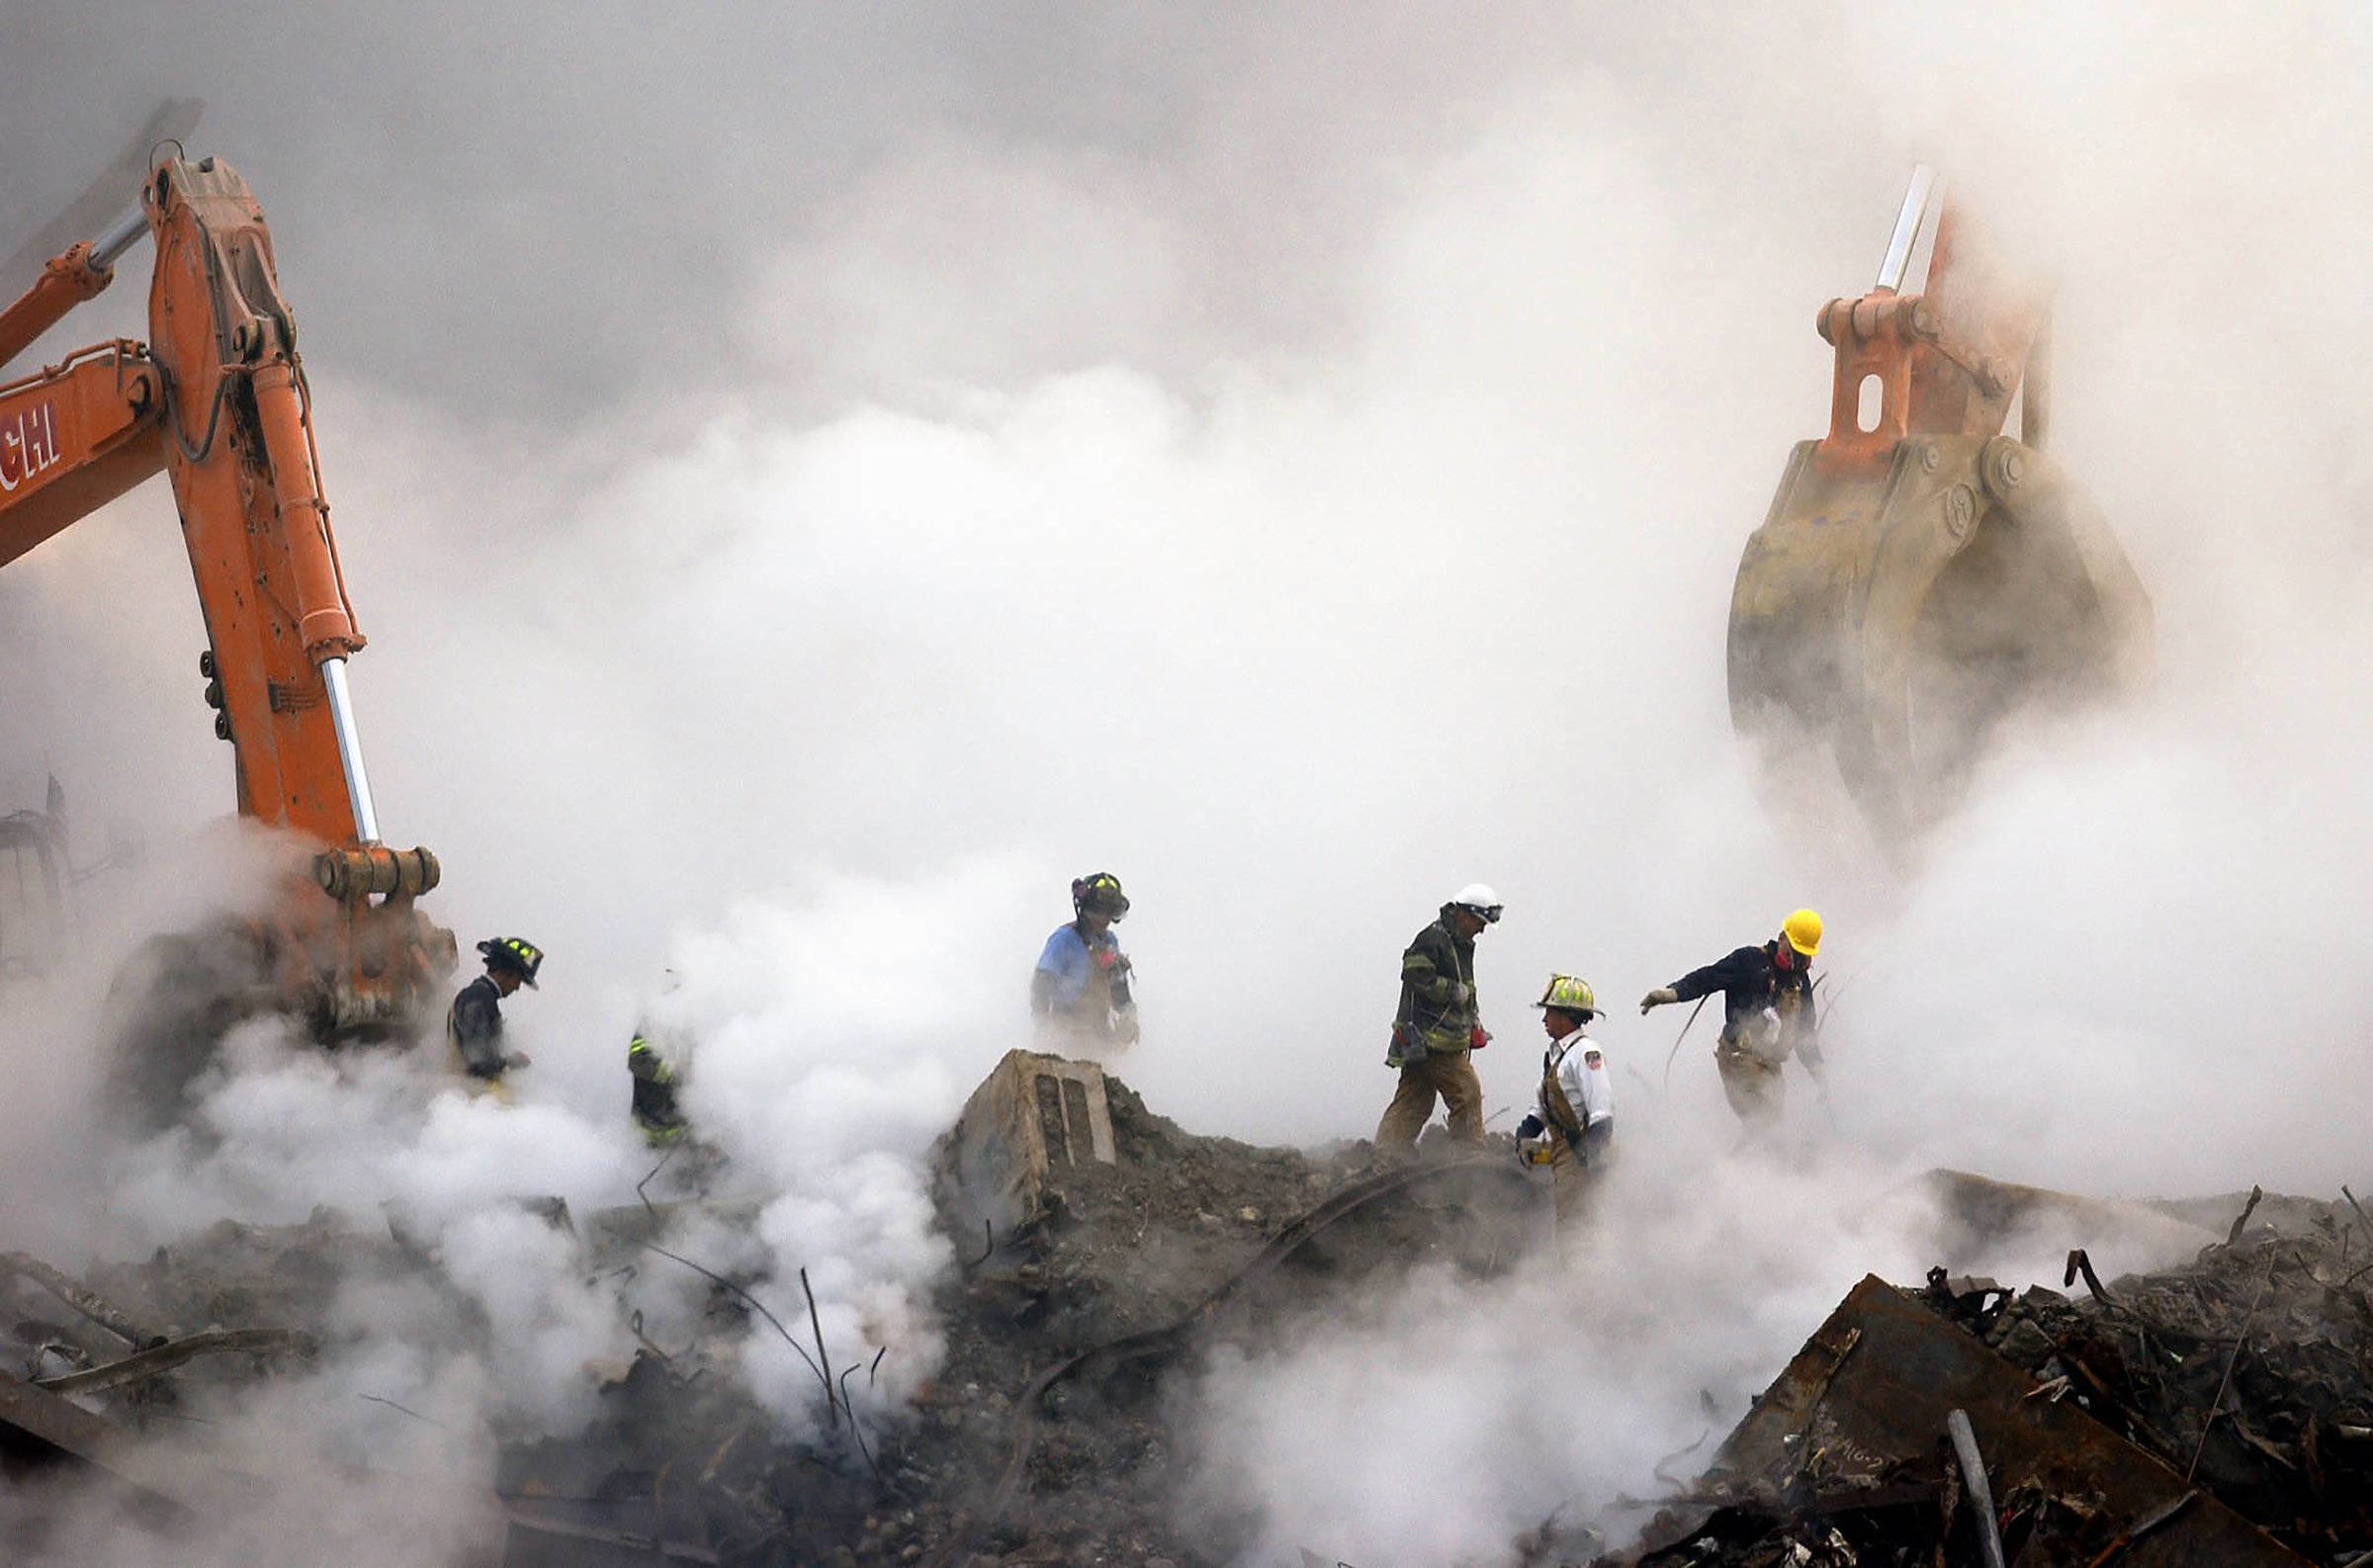 Firefighters make their way over the ruins and through clouds of smoke at the World Trade Center in New York, on Oct. 11, 2001.